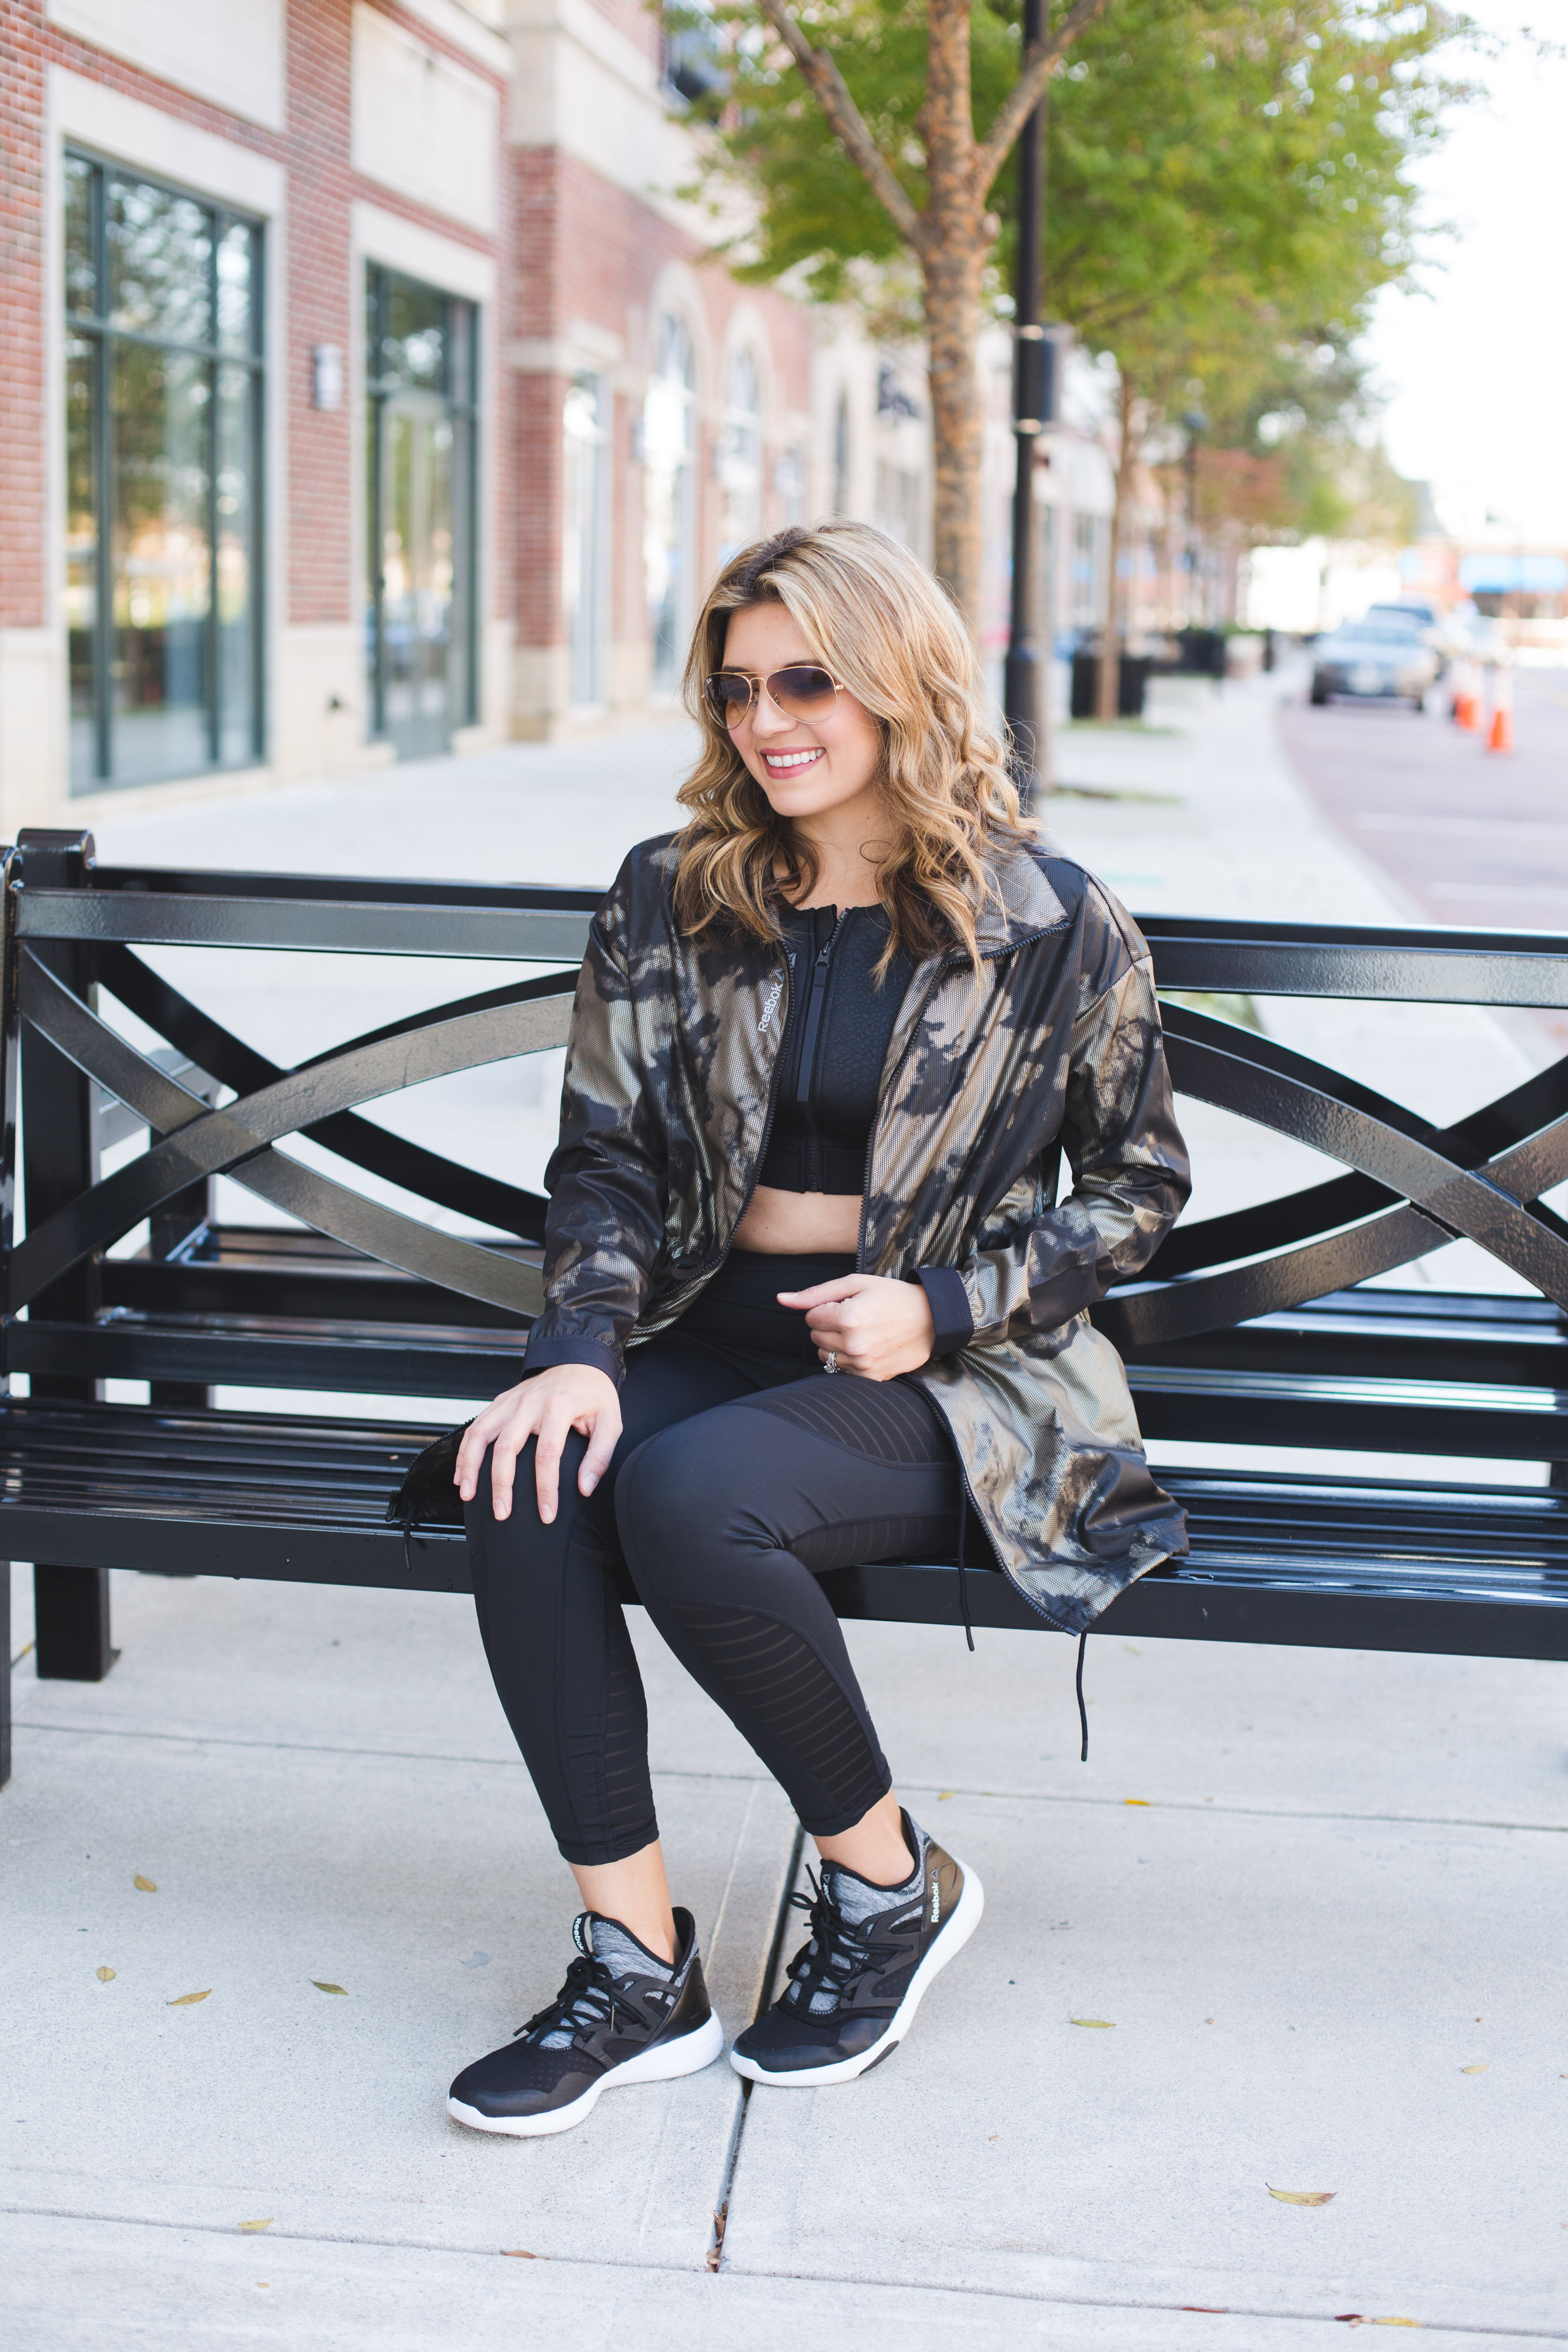 cute workout clothes - reebook parka jacket and mesh leggings | www.bylaurenm.com